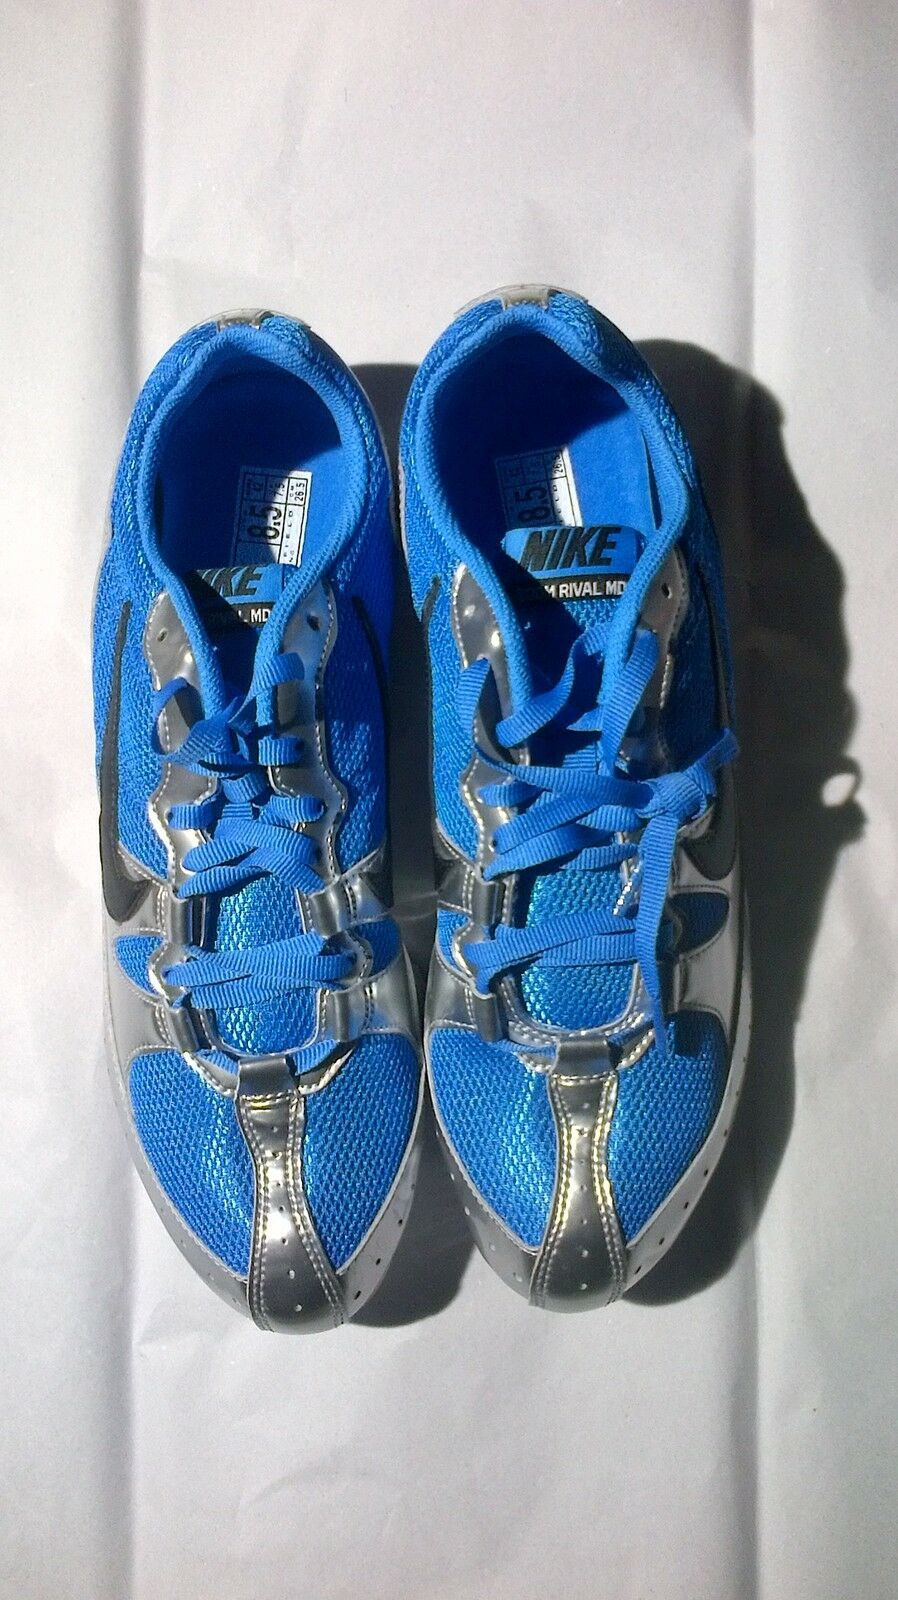 finest selection 8c6b6 52bce ... Nike Zoom Rival MD 5 V Track running shoe- shoe- shoe- style 383823